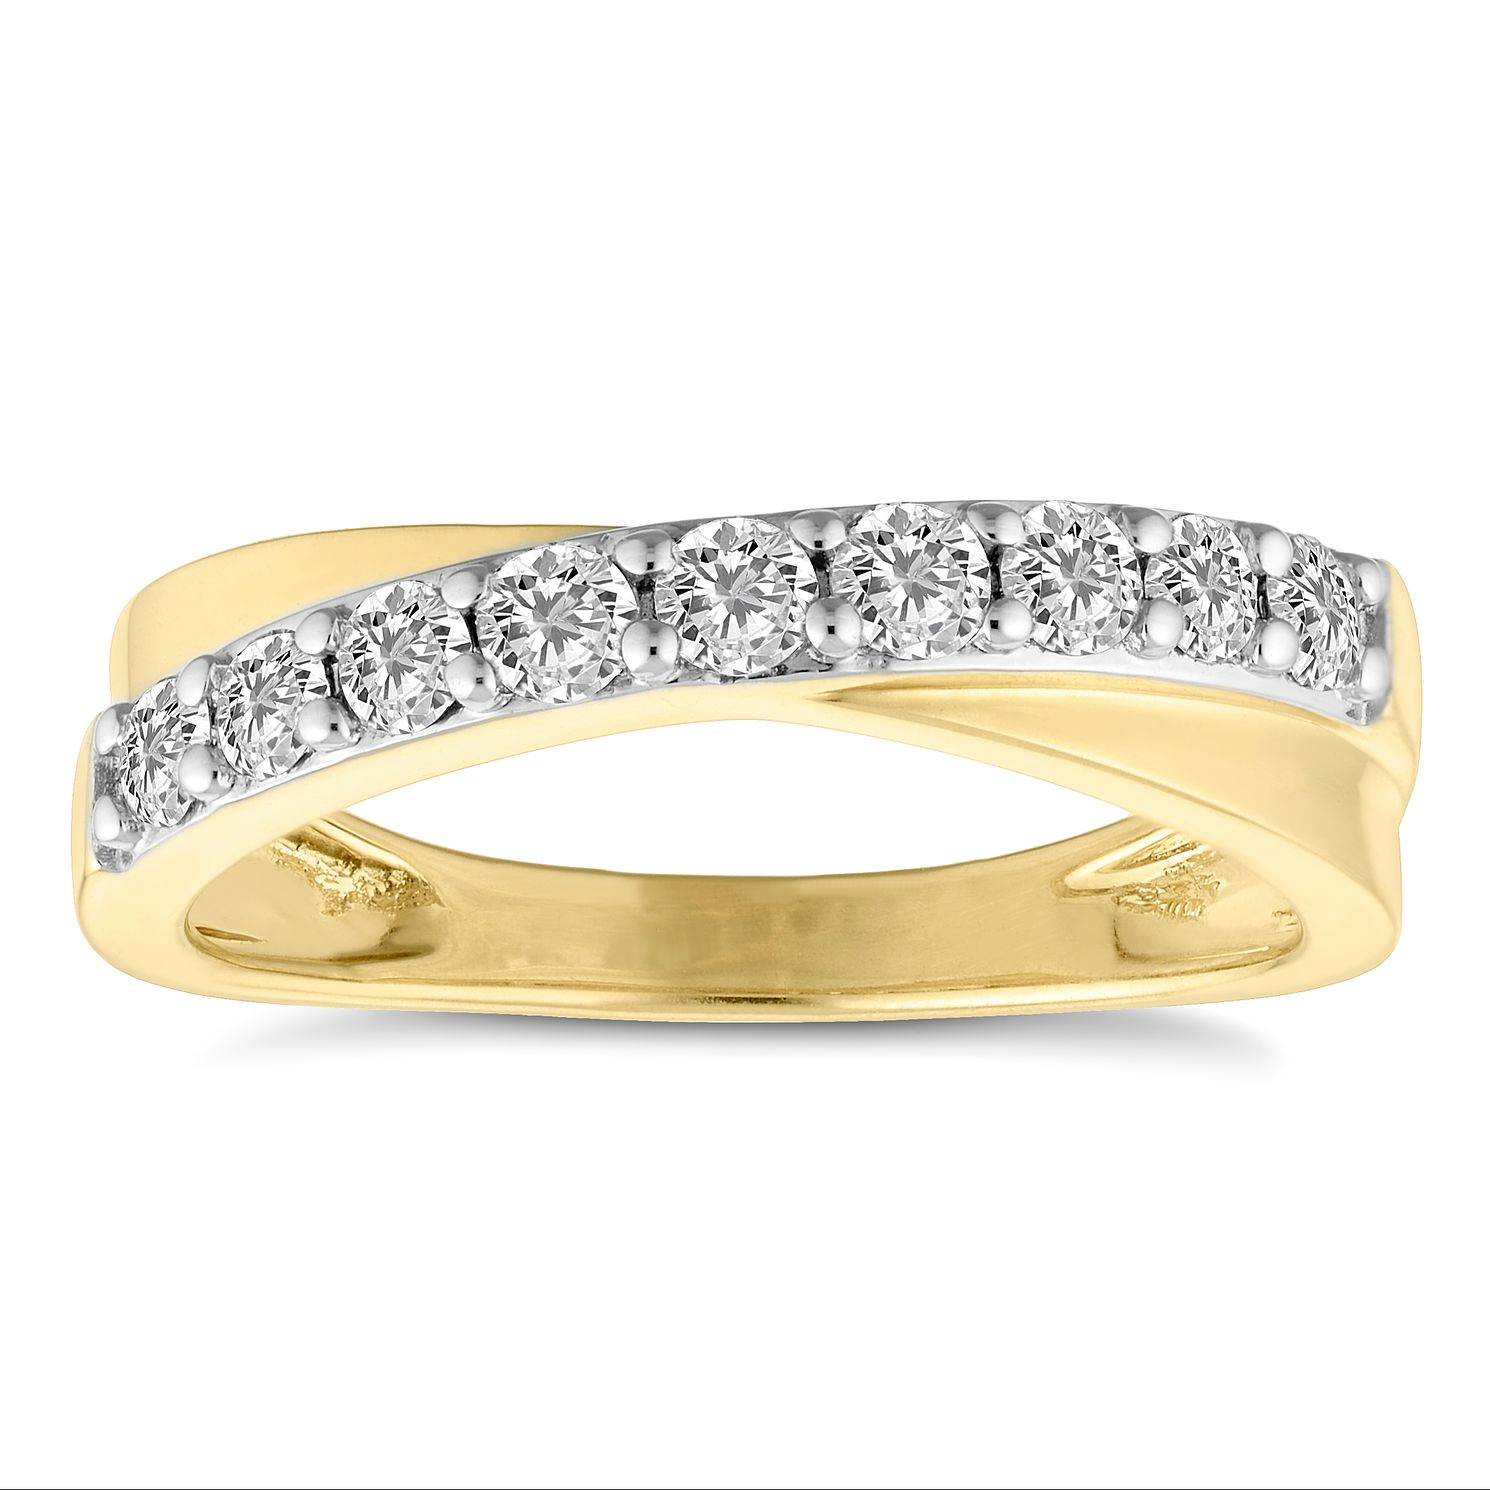 18ct Yellow Gold 1/2ct Crossover Eternity Ring - Product number 4675525